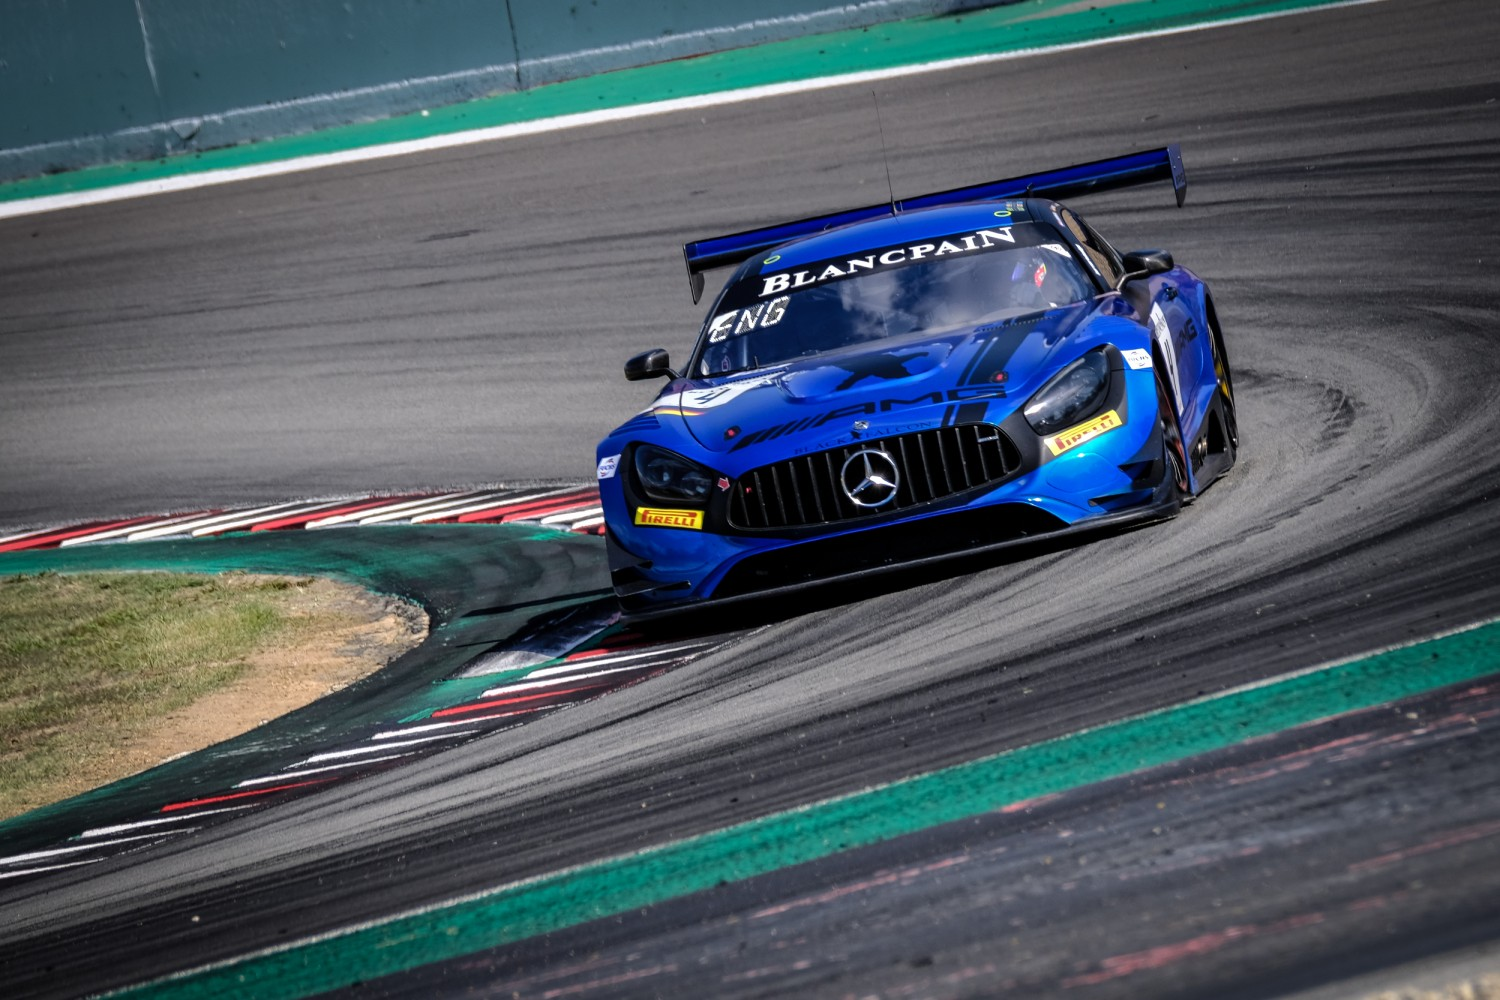 #4 Mercedes-AMG Team Black Falcon disqualified from the Barcelona race